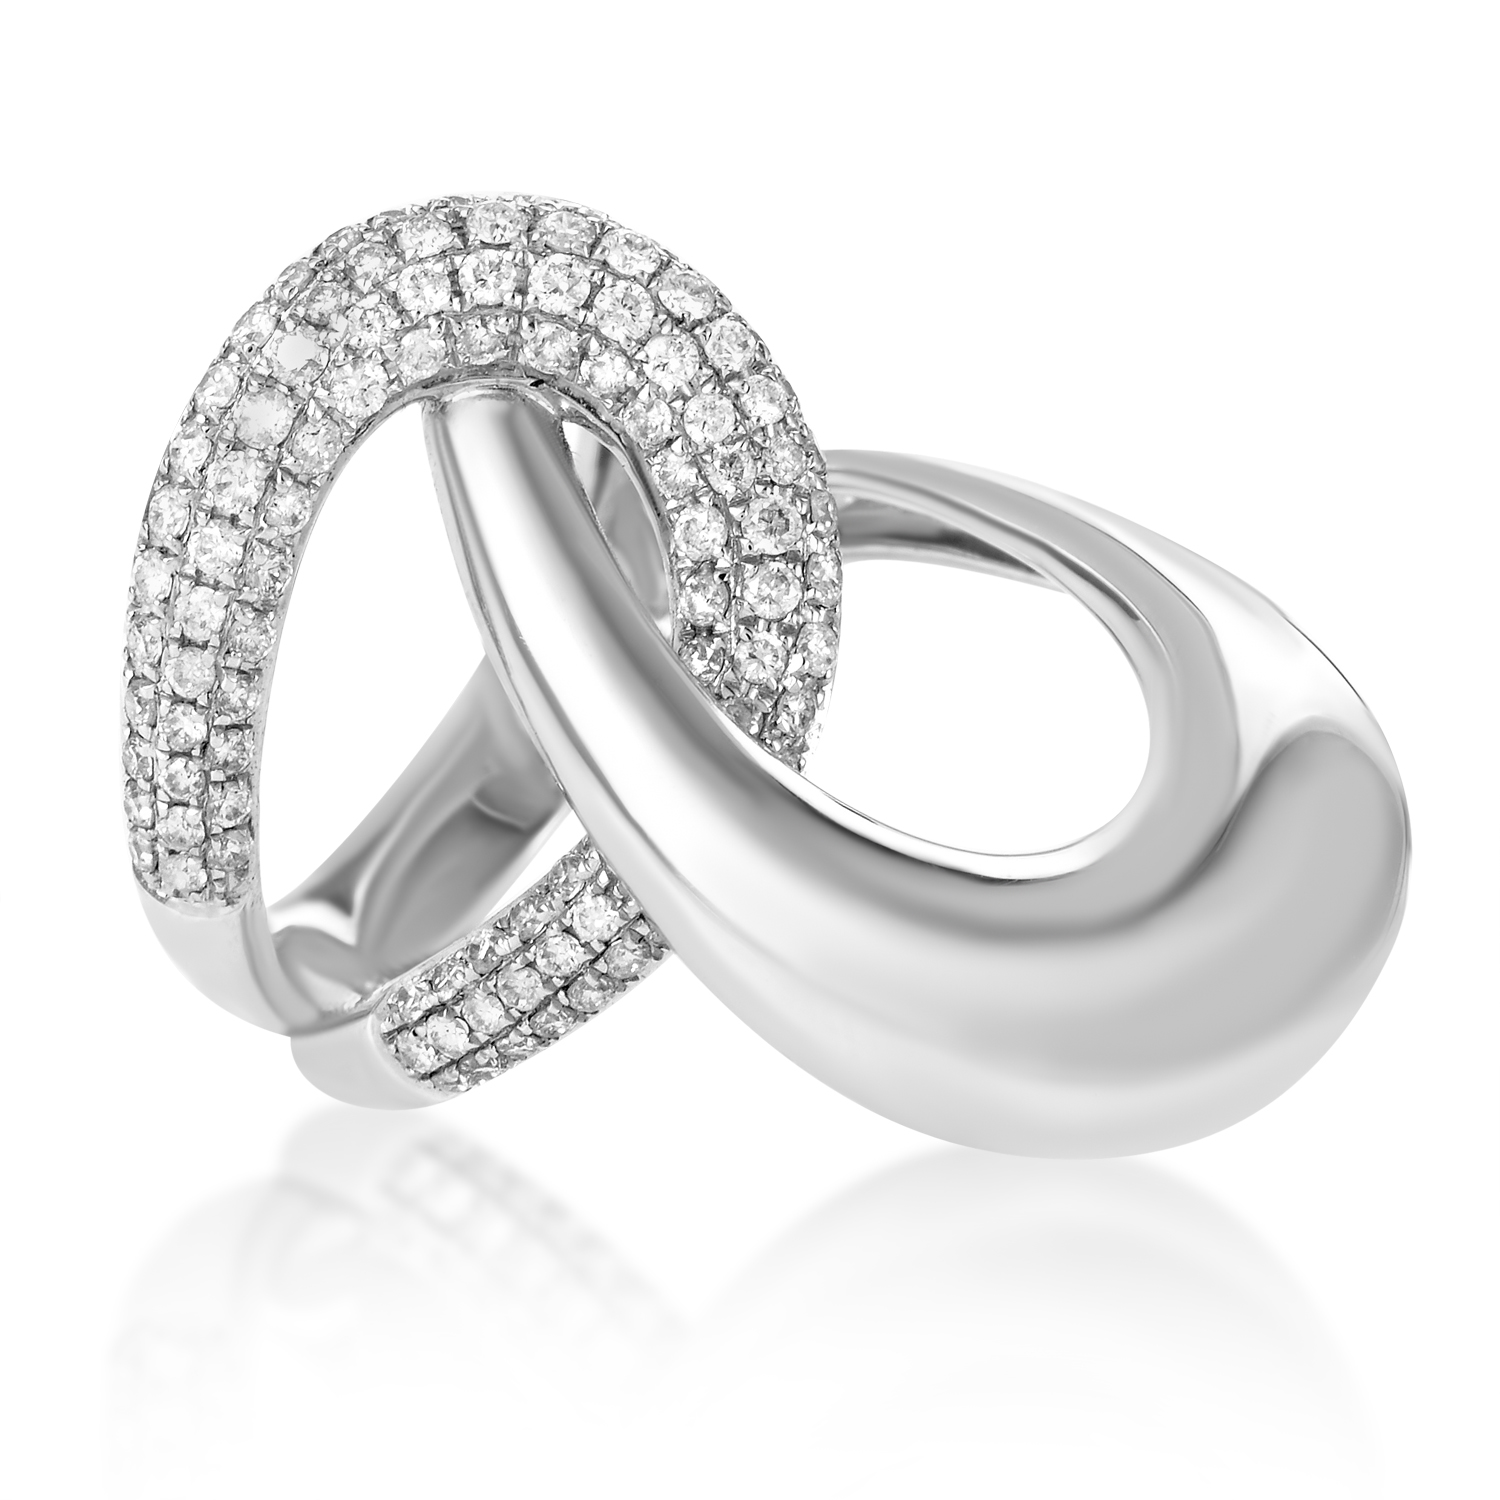 Women's 18K White Gold Knotted Partial Diamond Pave Ring KOD919REBZ